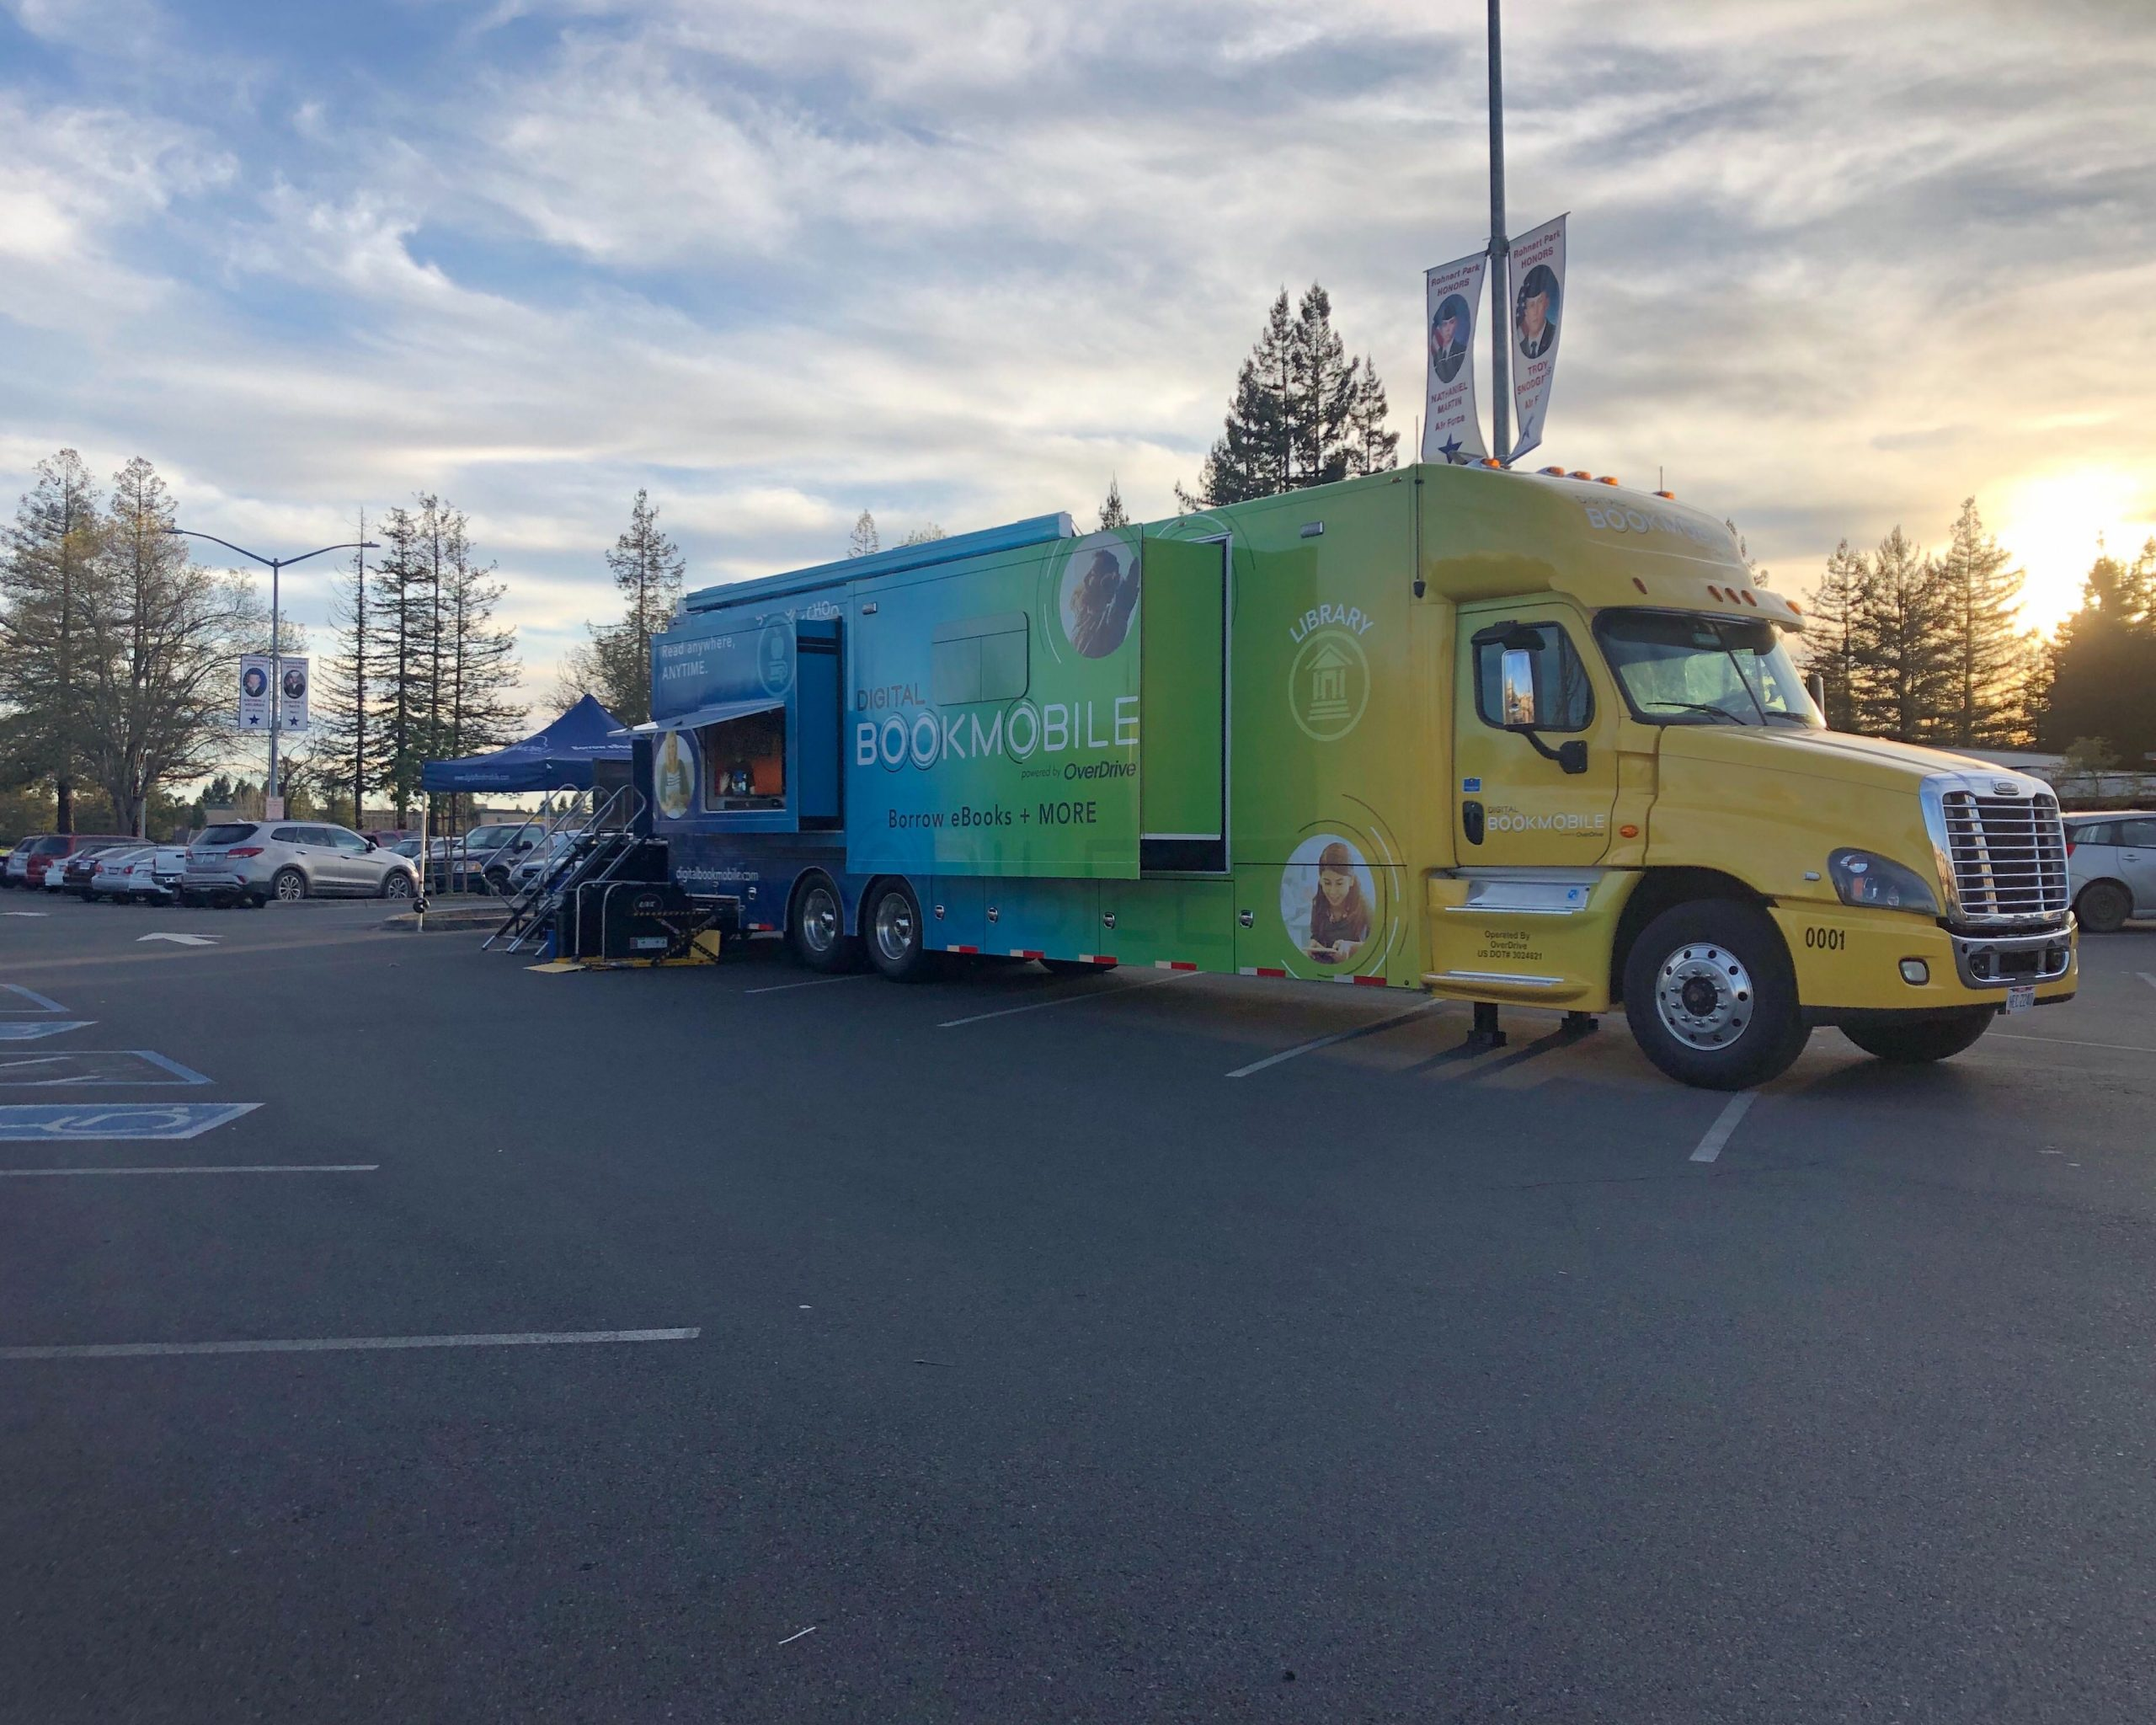 The Digital Bookmobile's 2020 Tour: Bigger, badder, and better than ever